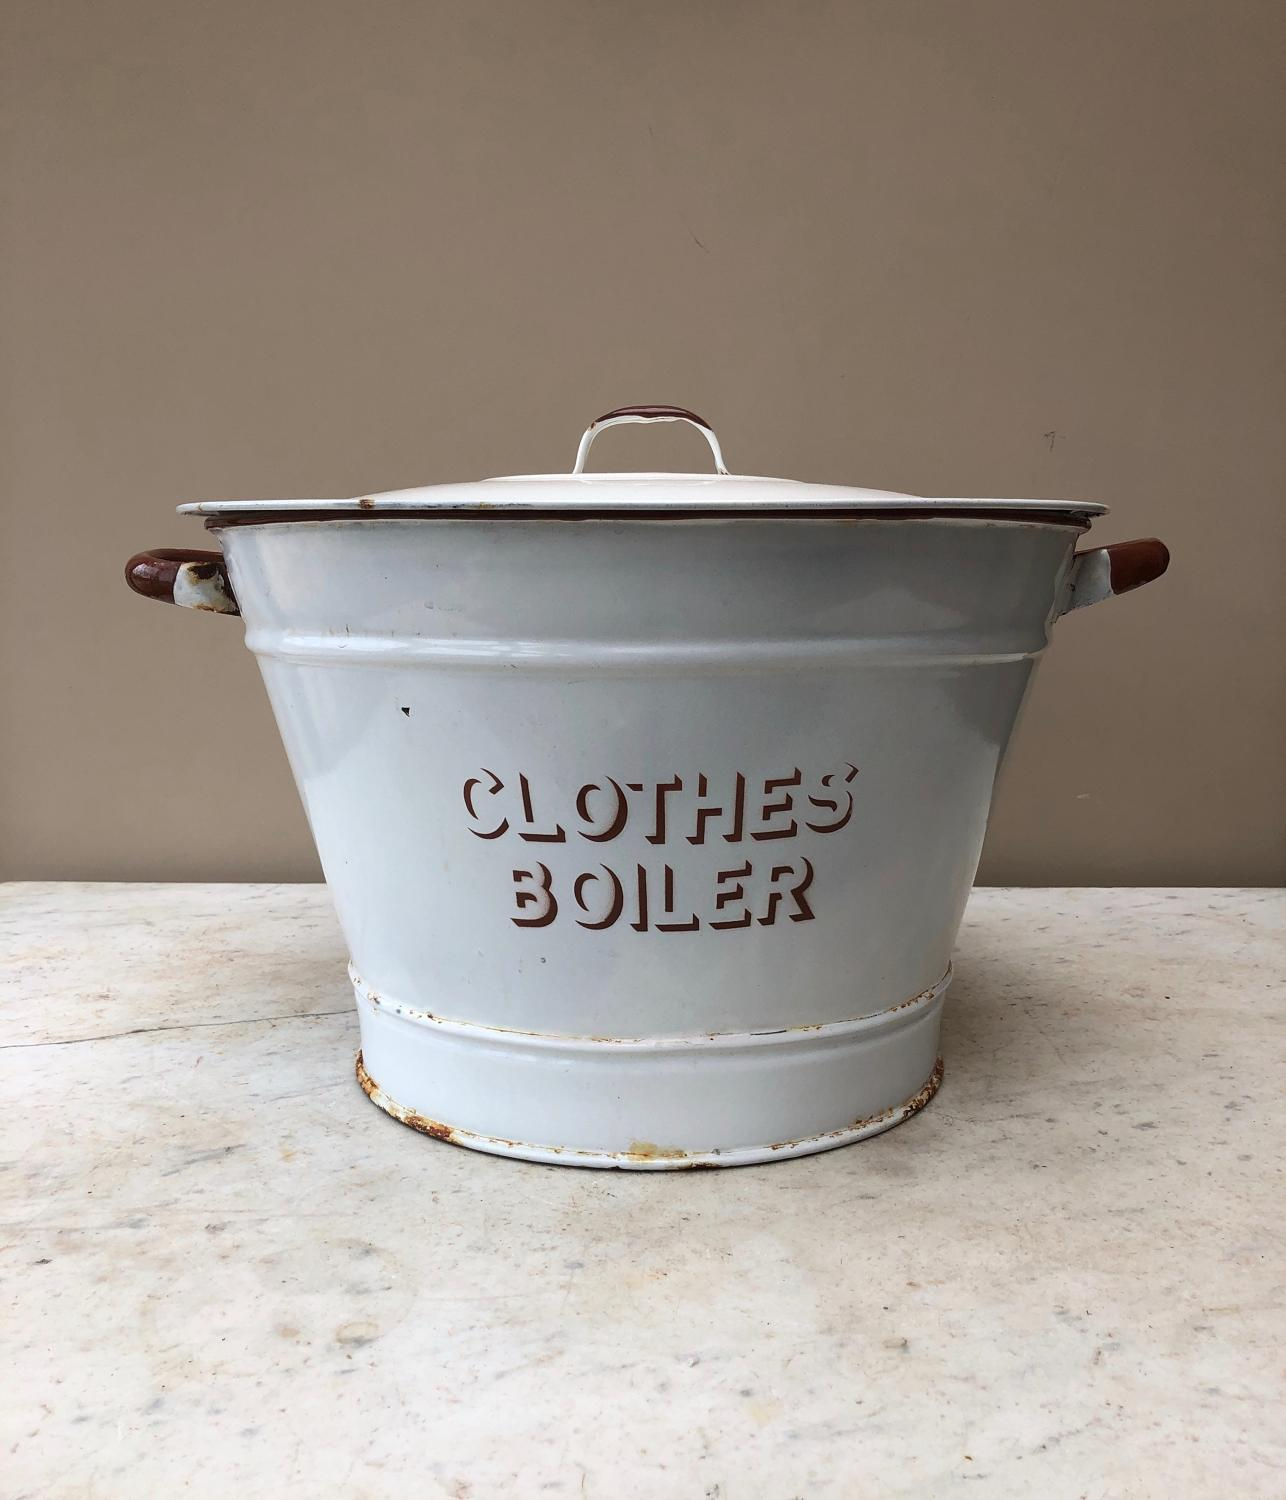 Early 20th Century White Enamel Clothes Boiler with Lid